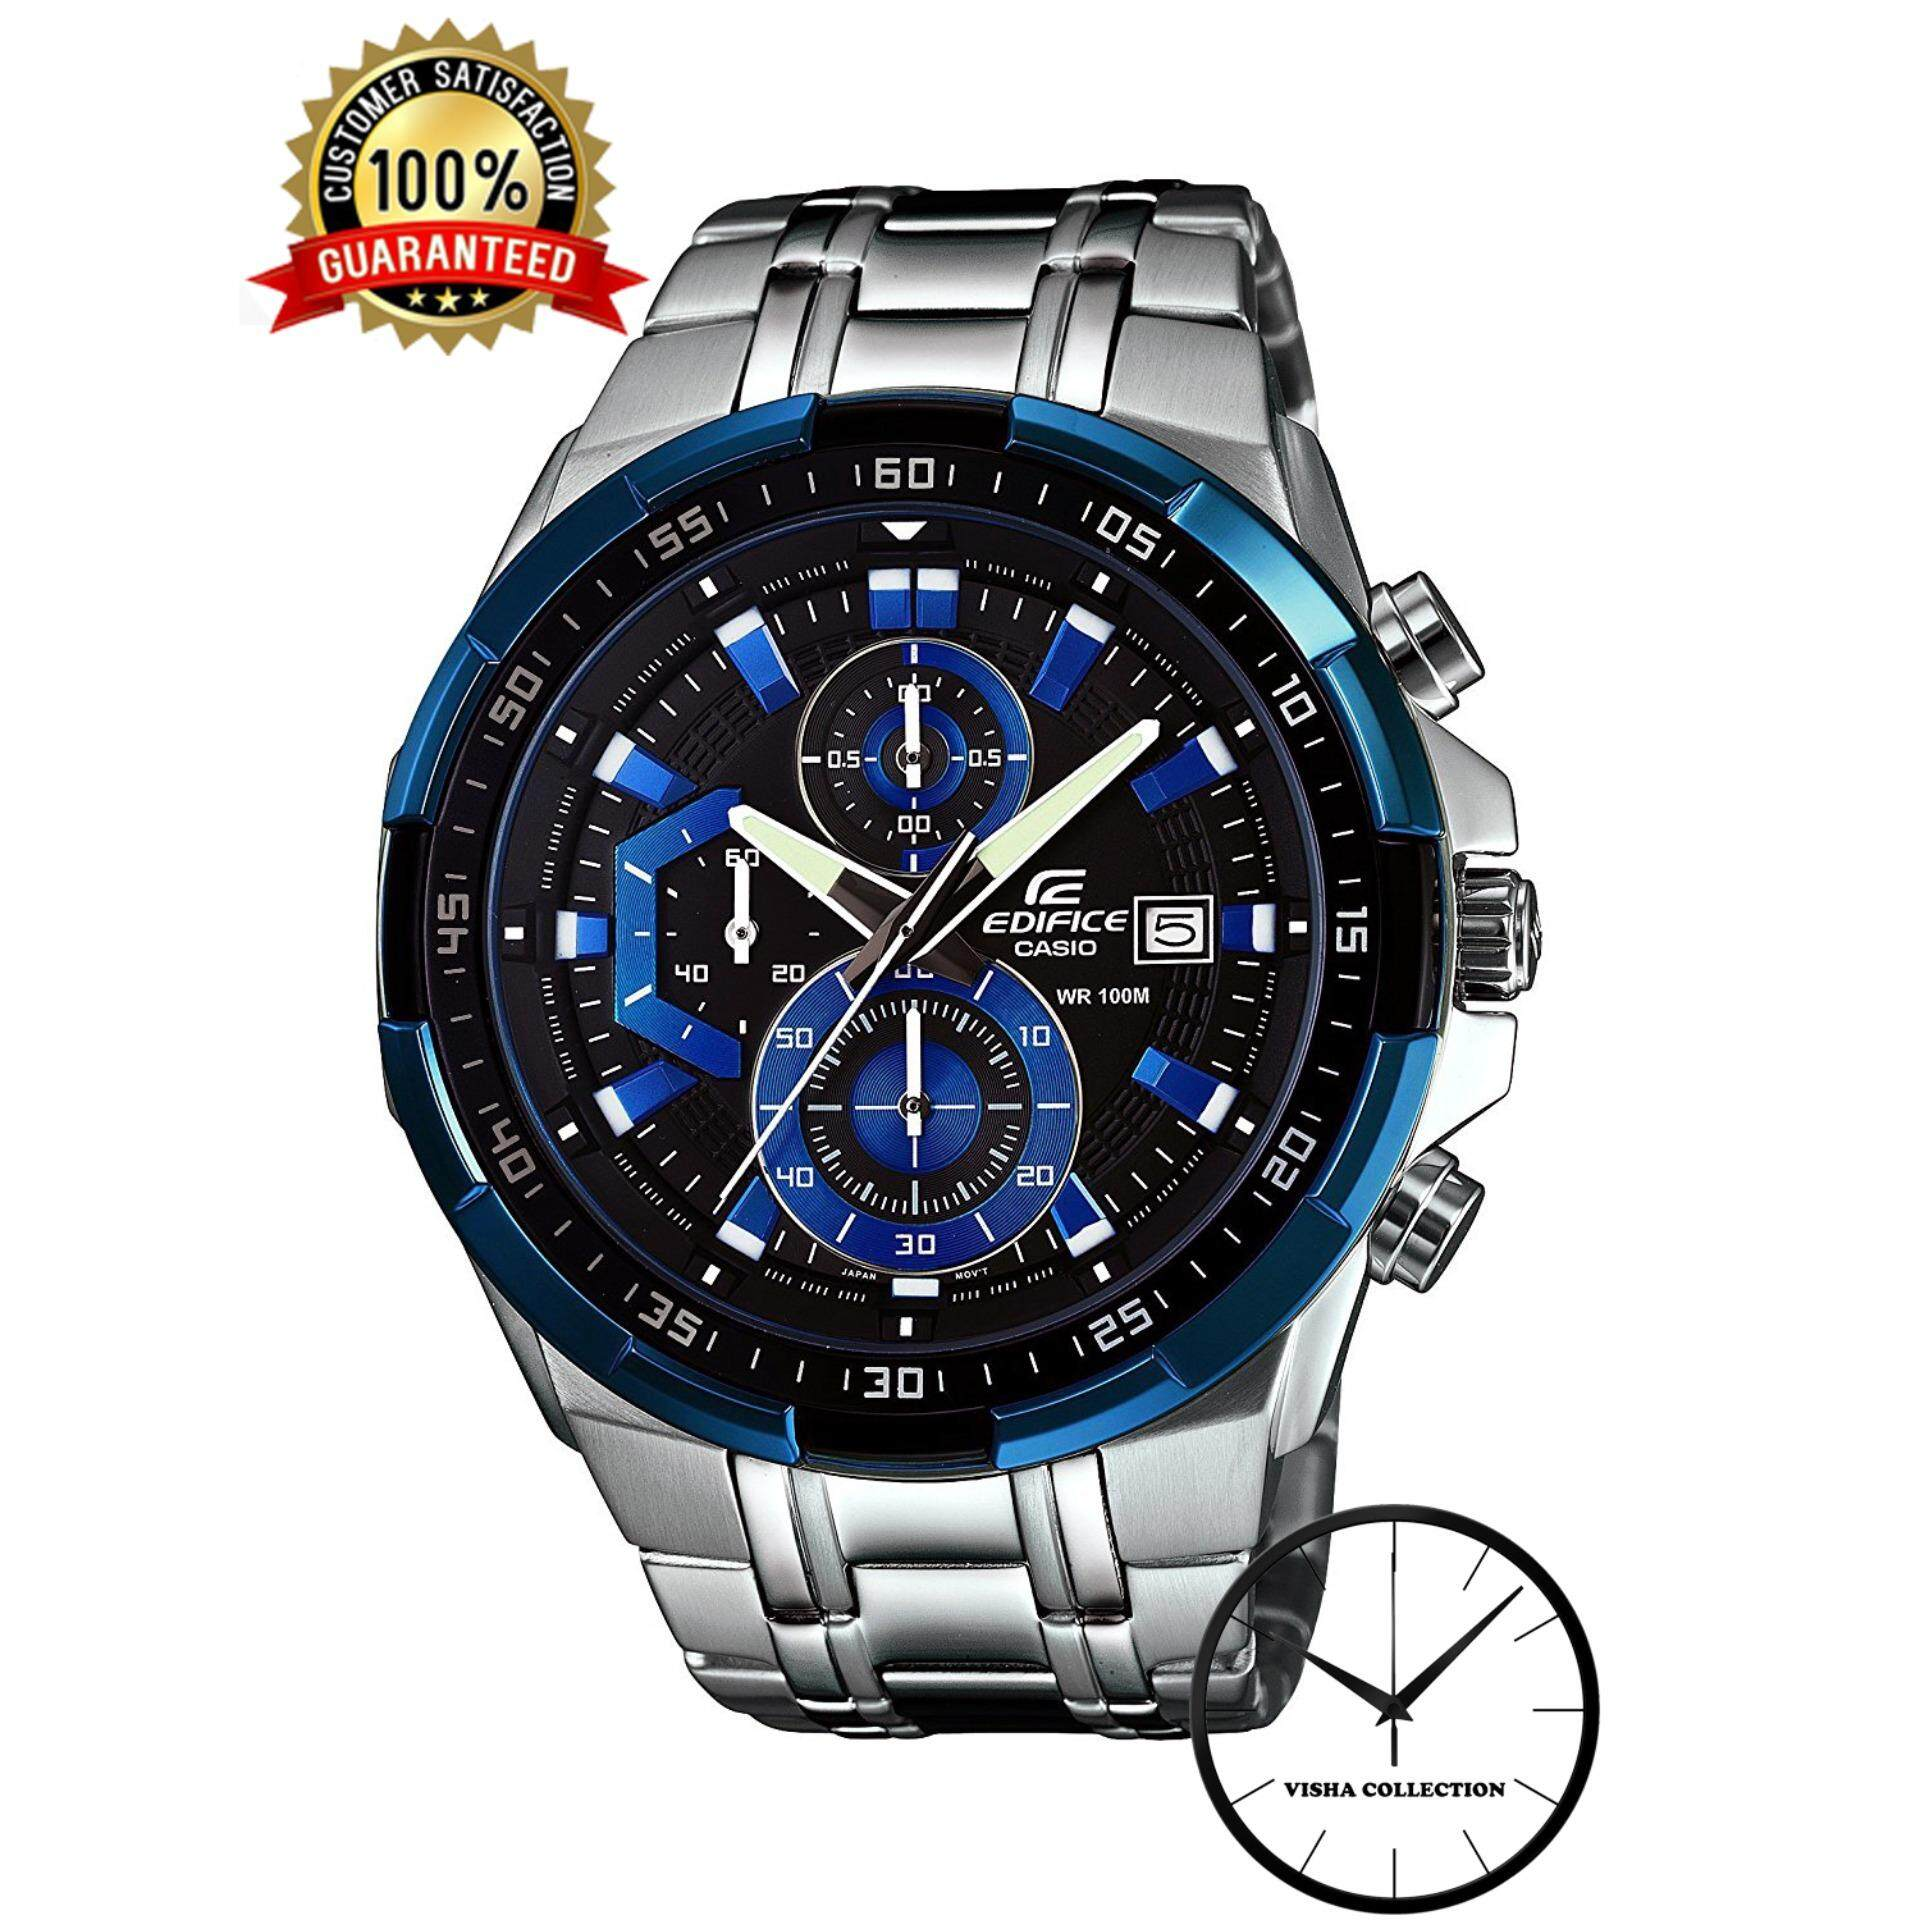 Special Promotion Premium Quality Efr-539d-1a2vu Men Fashion Blue Dial Water Resistant Watch Malaysia